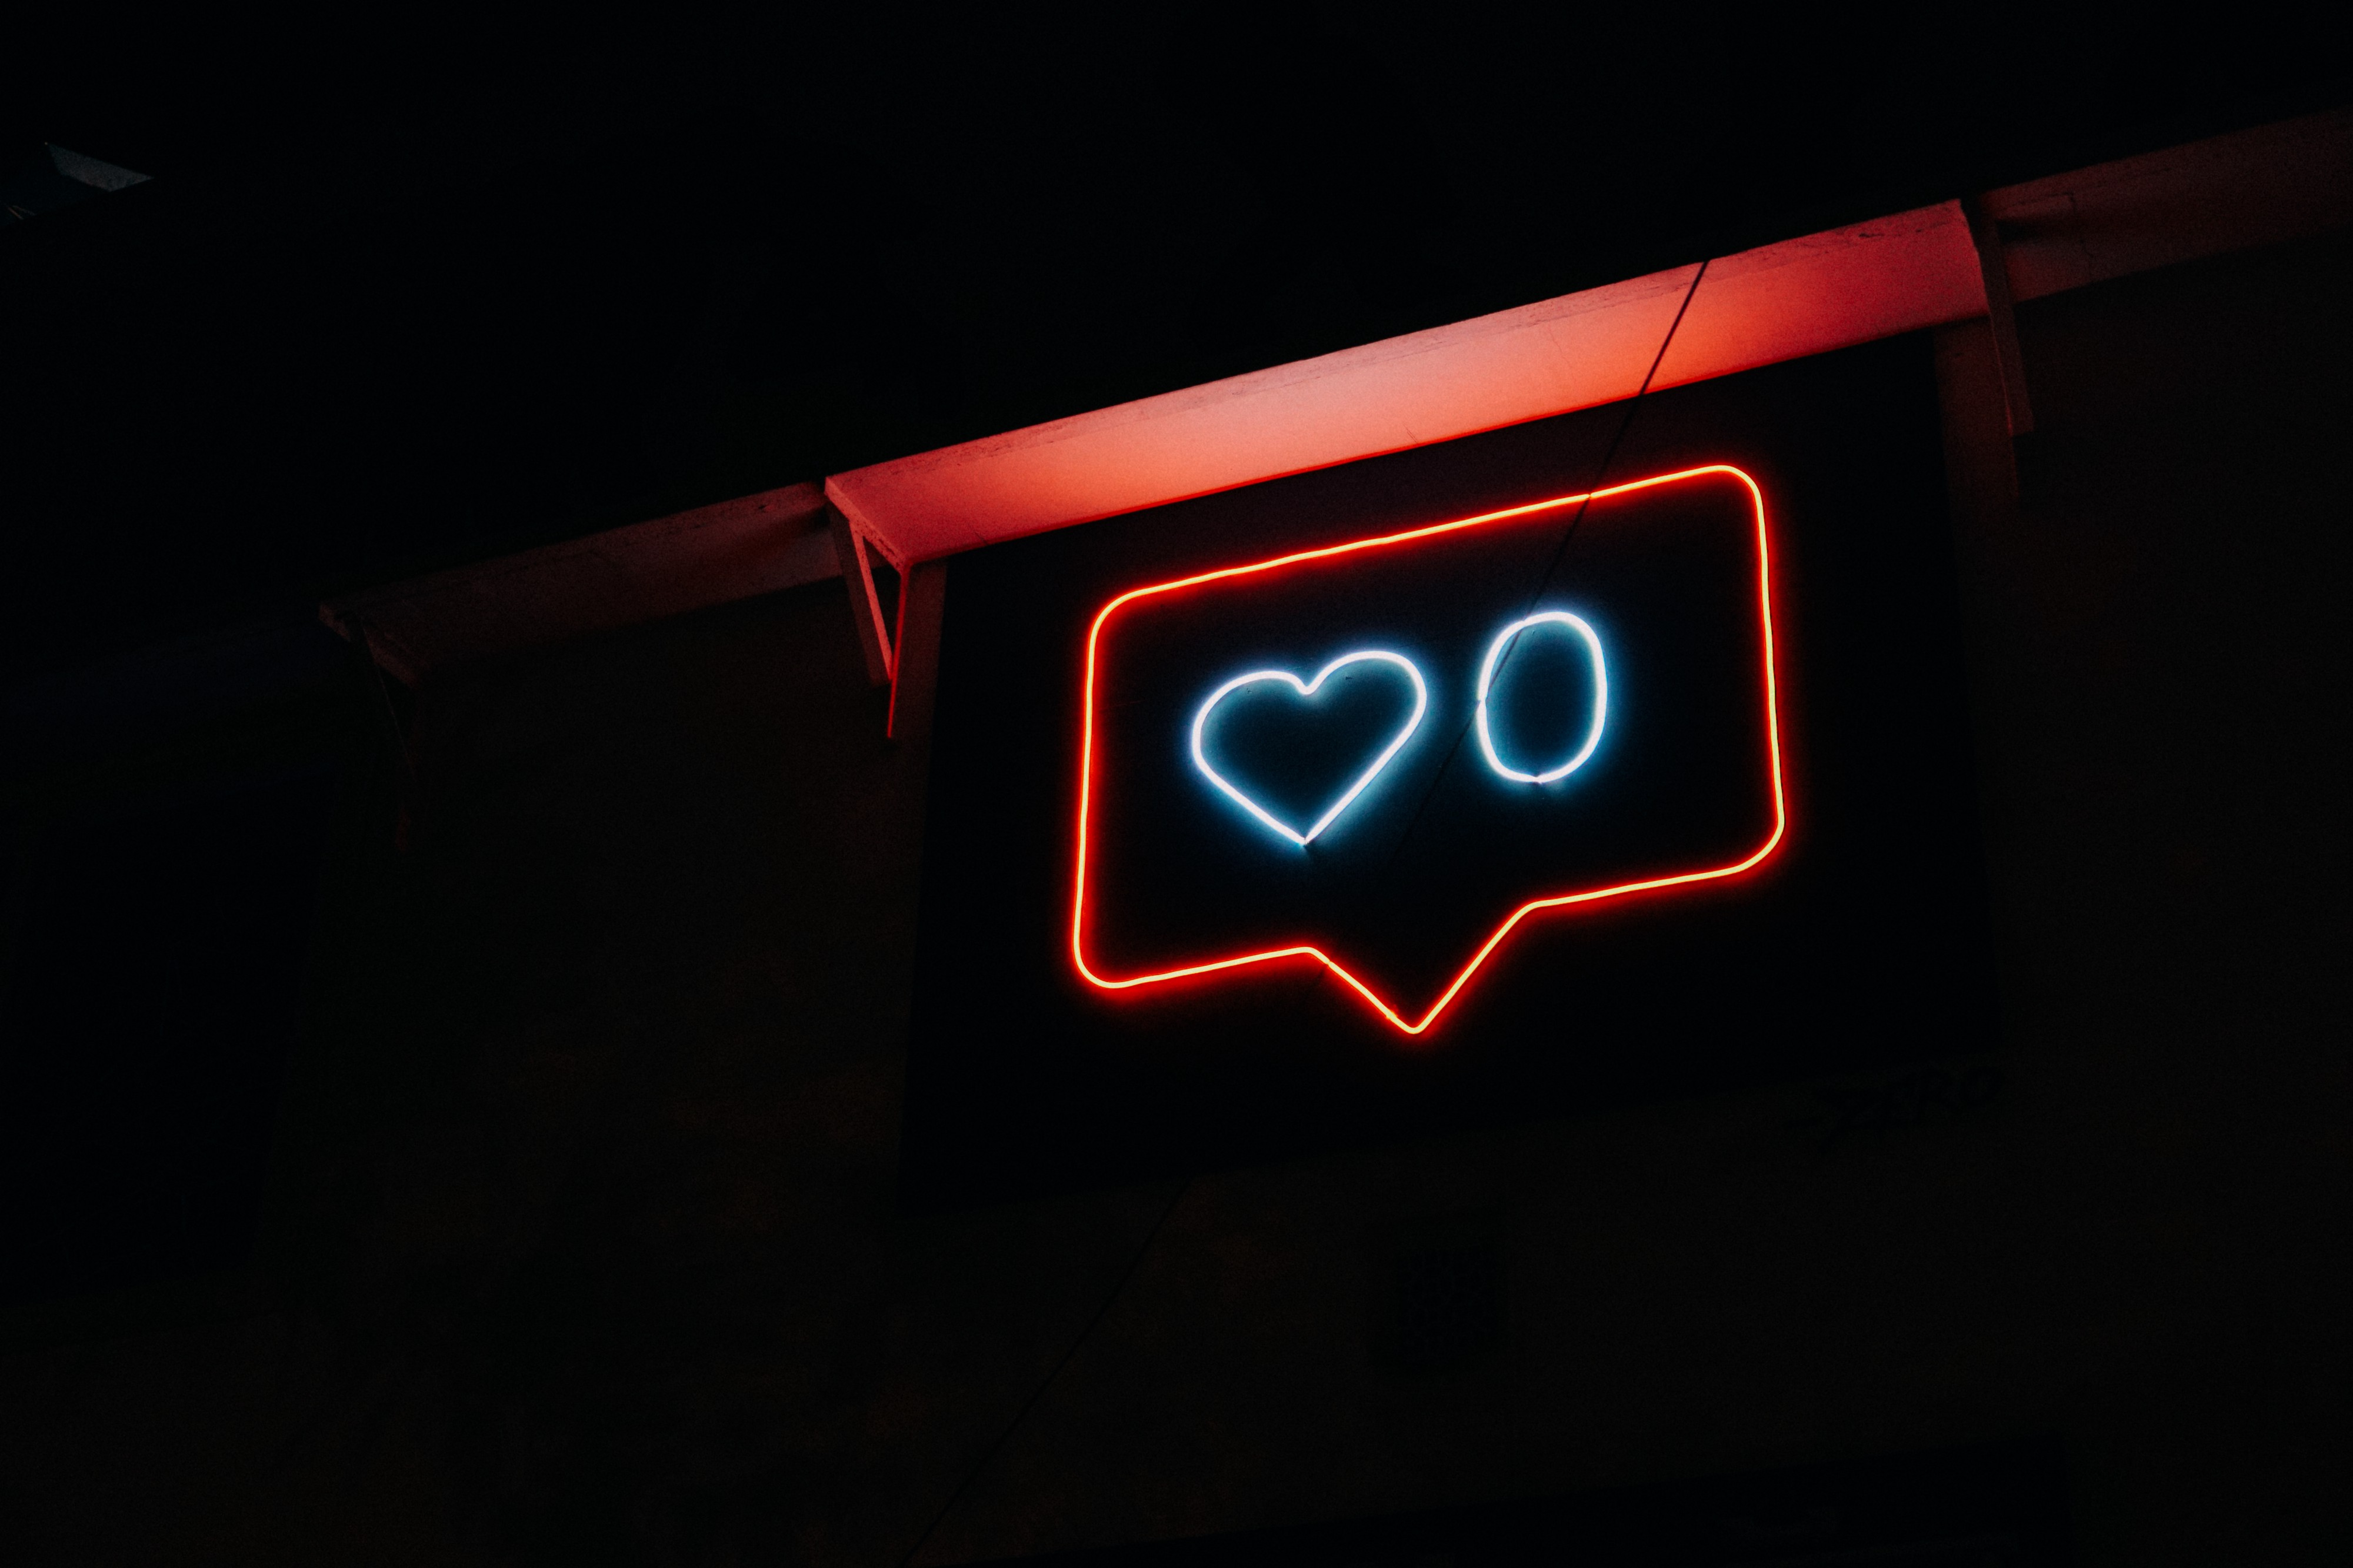 neon sign of a heart with a zero beside it, in red.